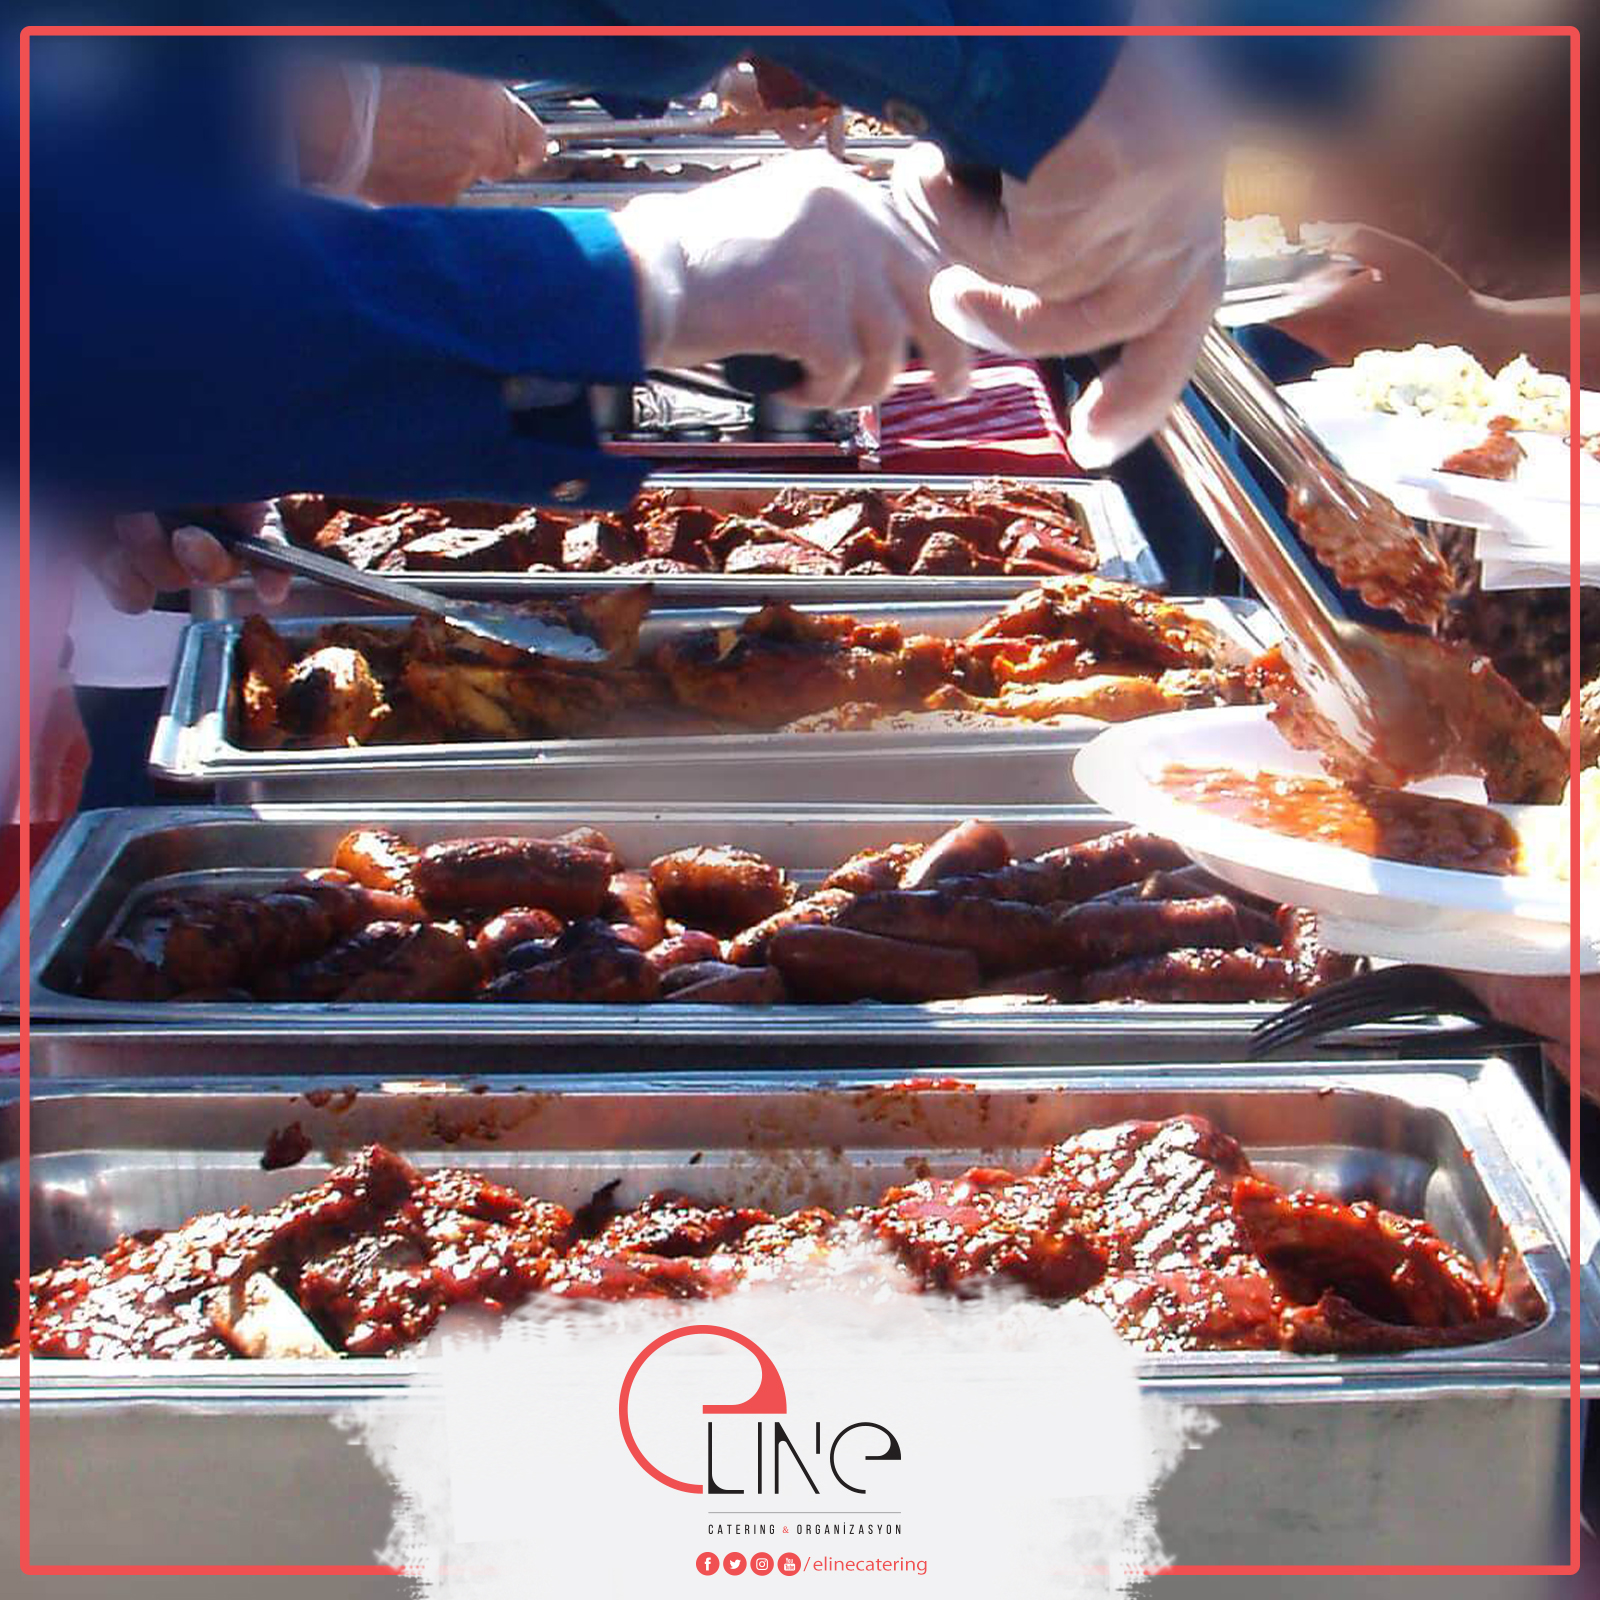 Eline Catering BBQ